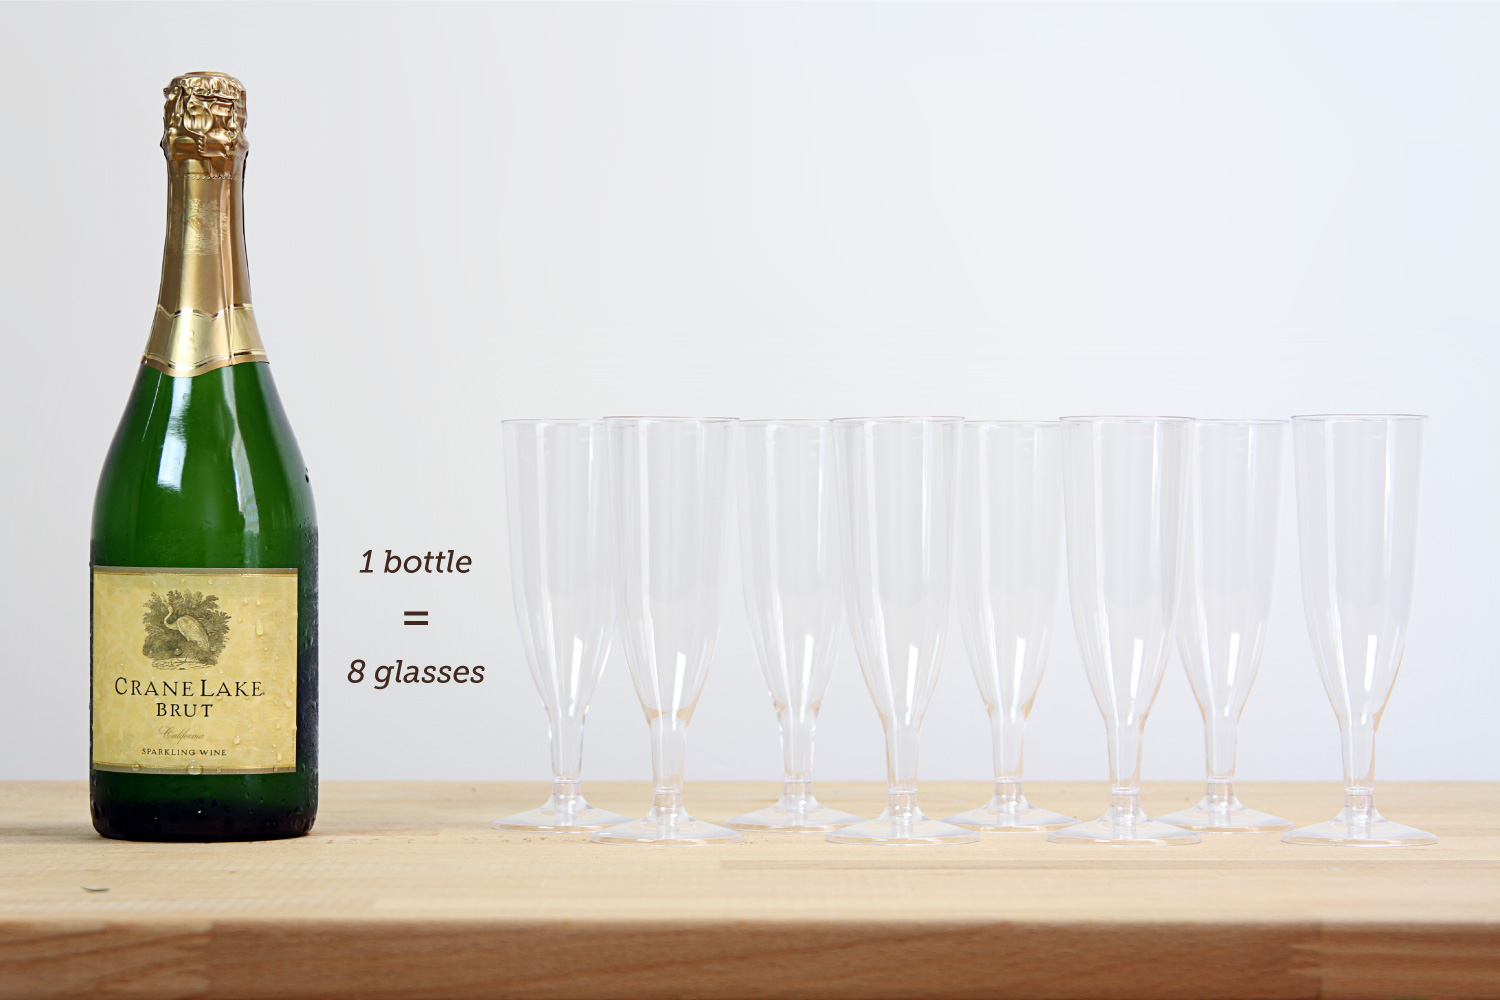 Diy mimosa bar styling ideas and recipes shari 39 s for How many mimosas per bottle of champagne